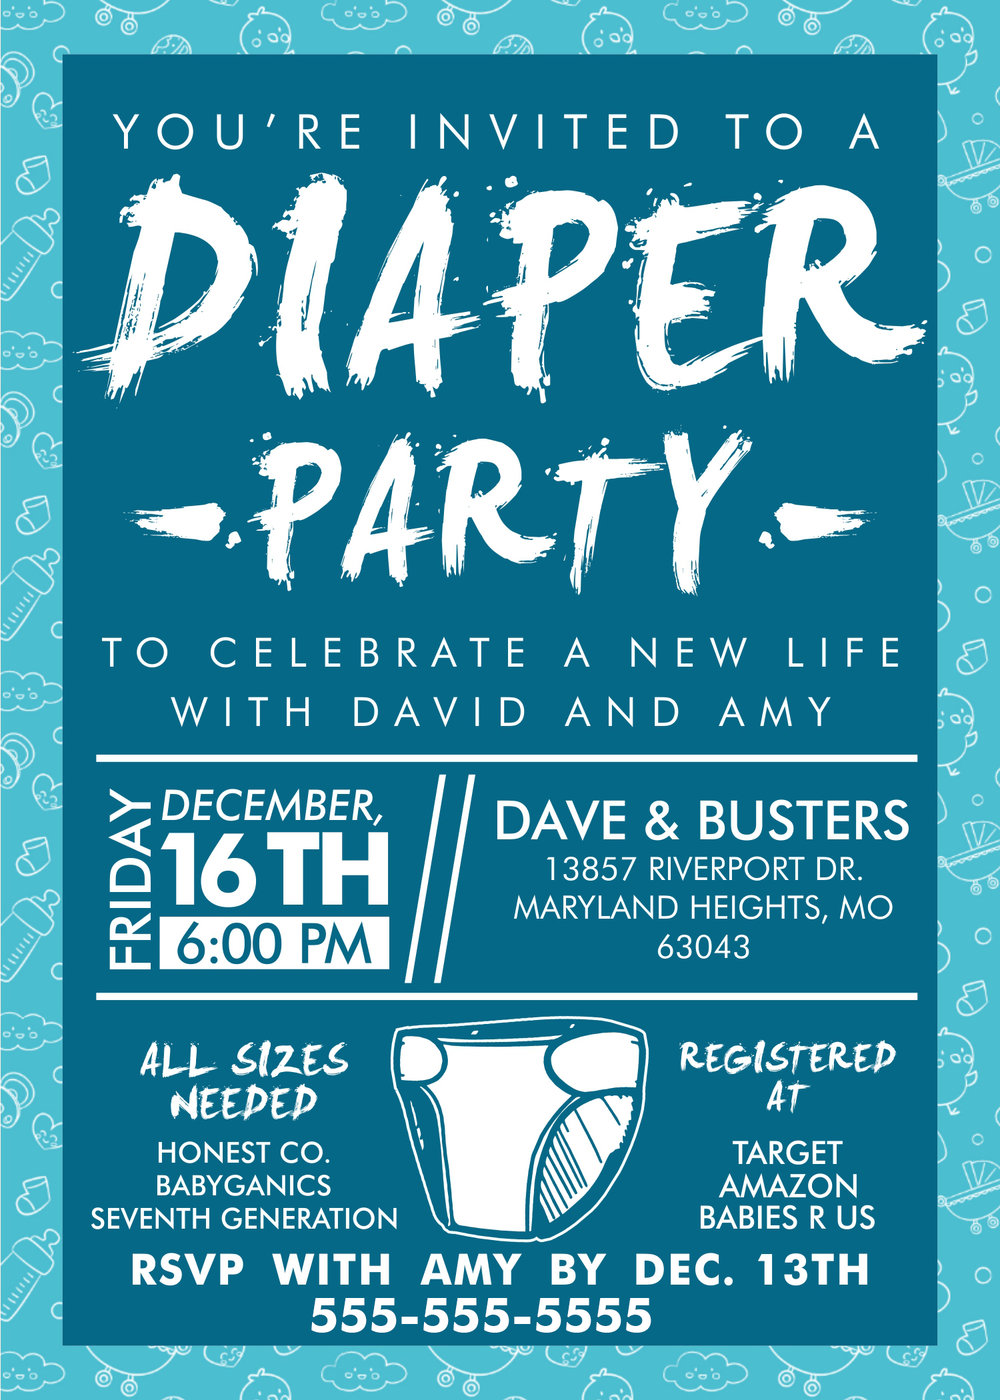 DIAPERPARTY.jpg